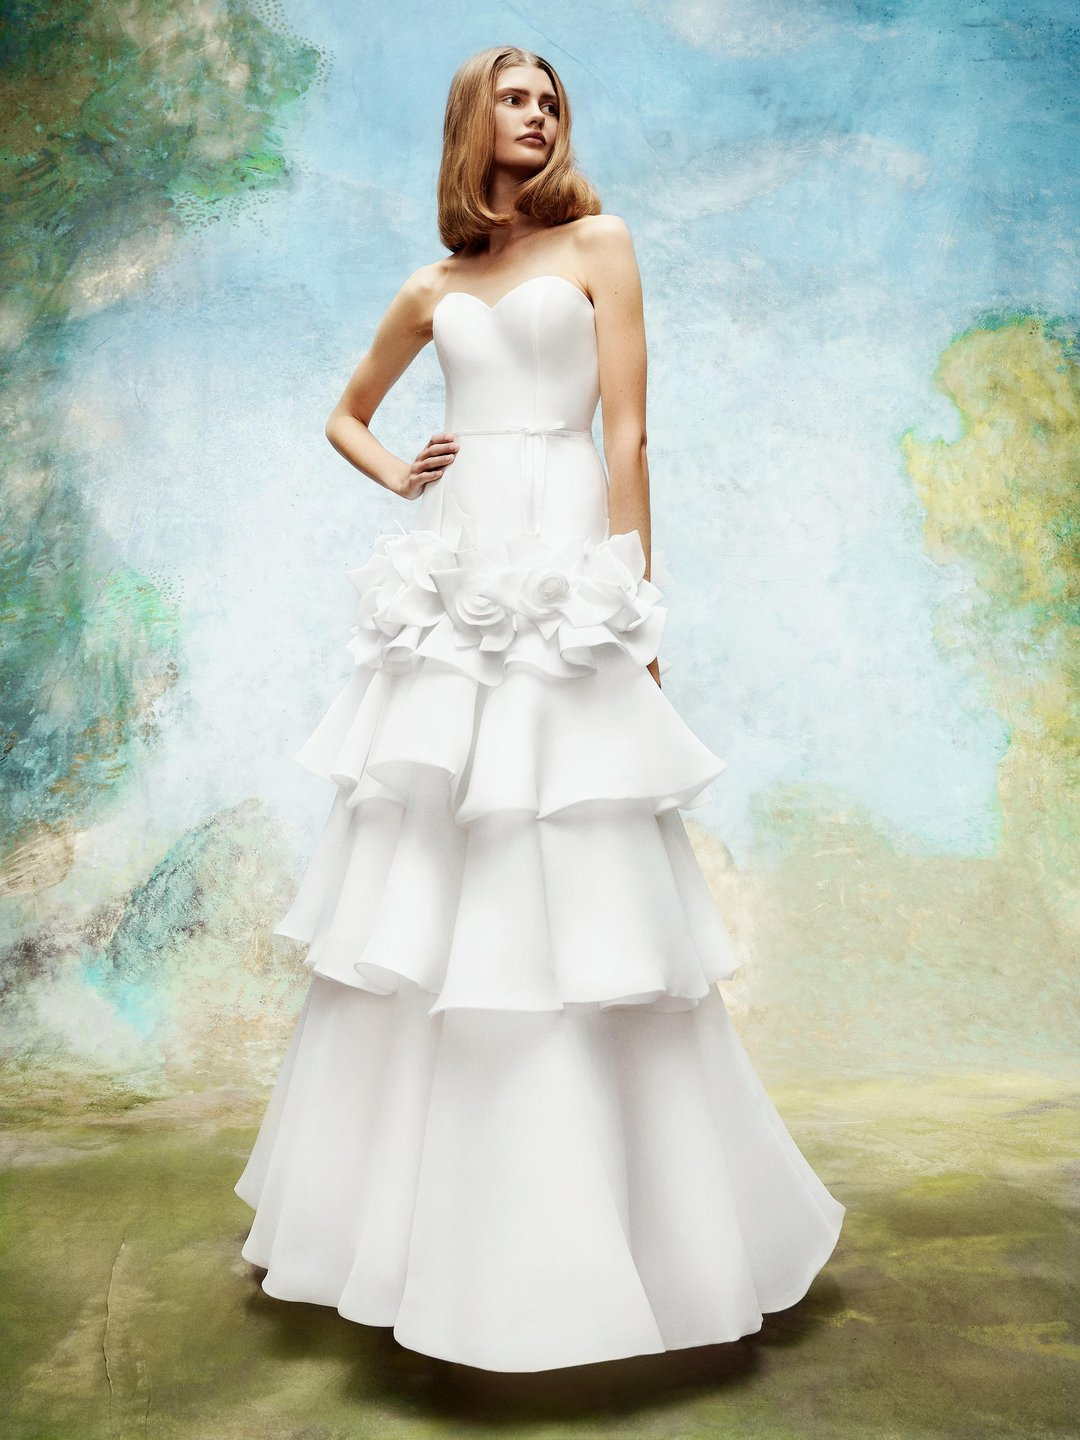 wild roses tiered gown  dress photo